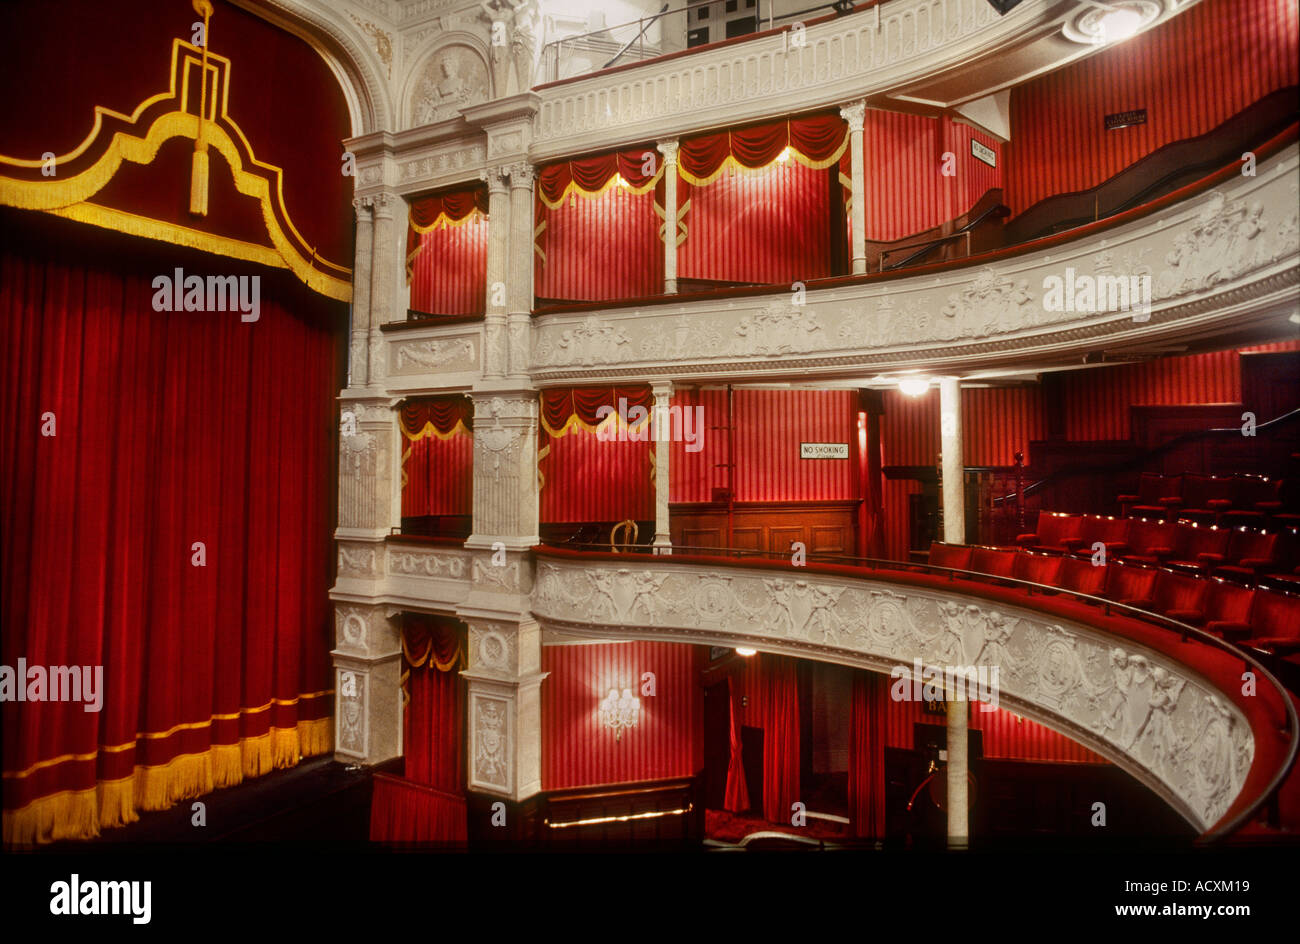 Side View Of Theatre Boxes And Stage Curtain In The